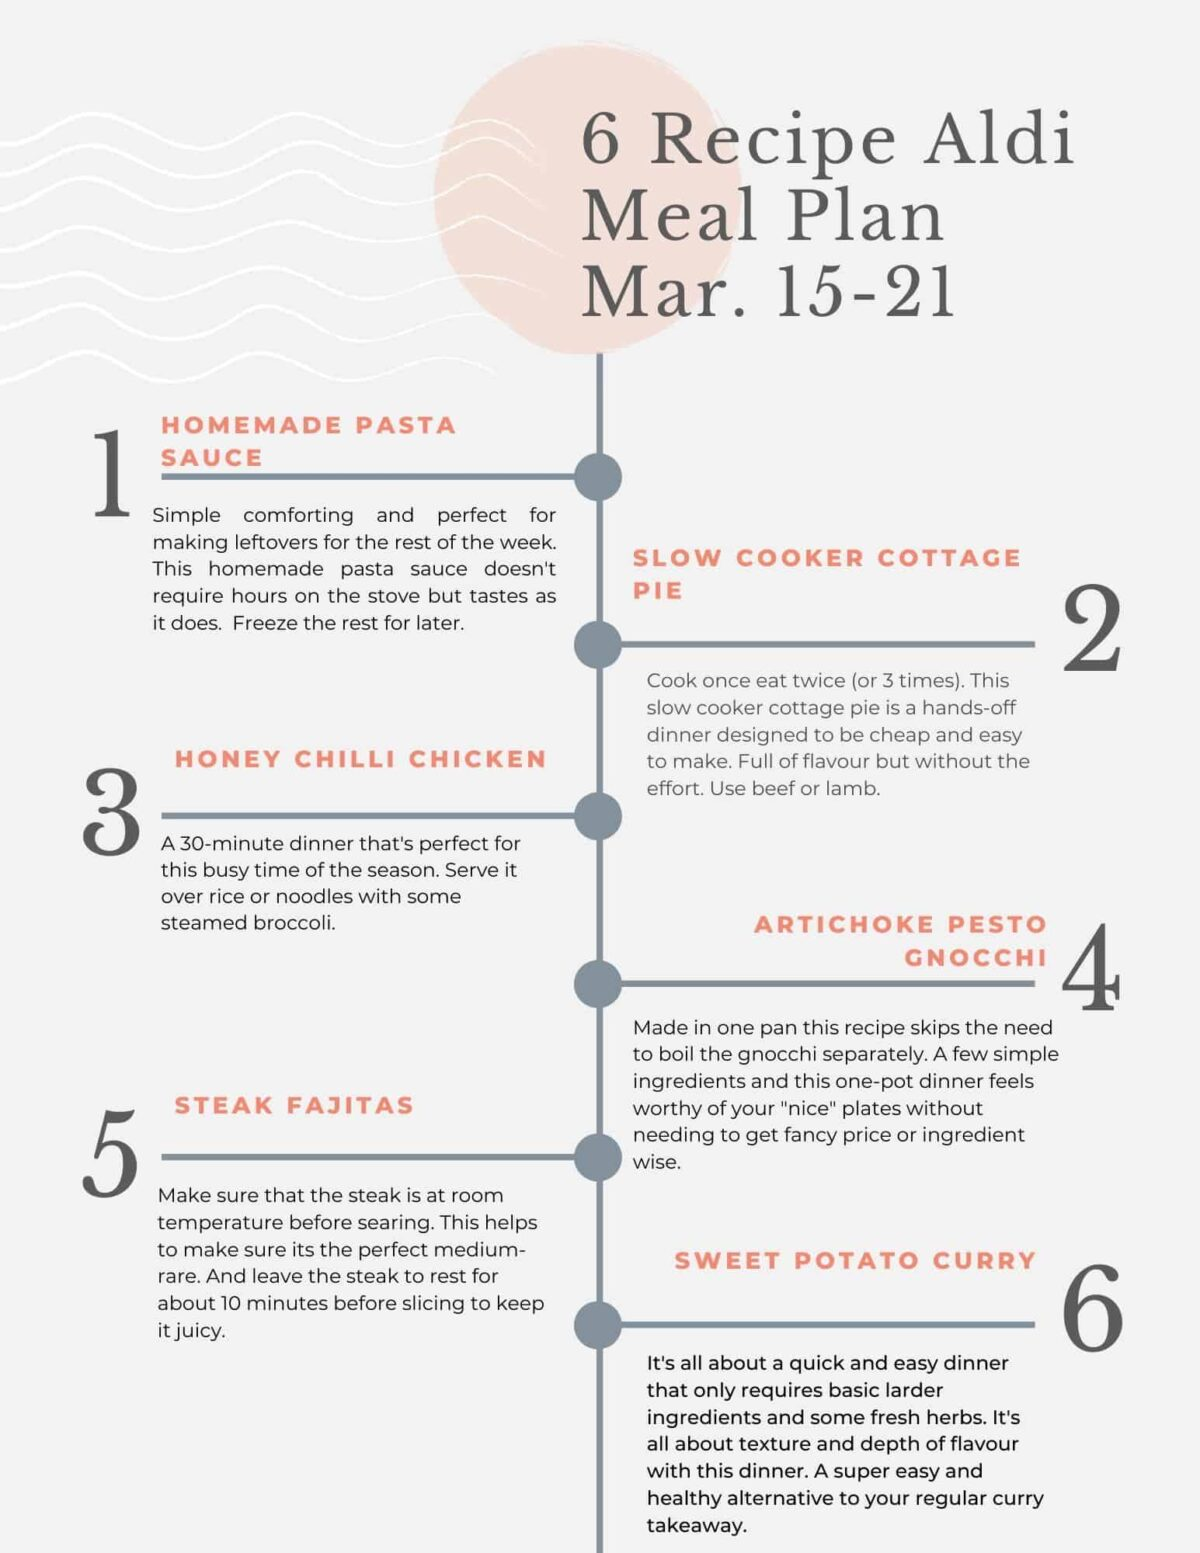 Aldi meal plan tip sheet.